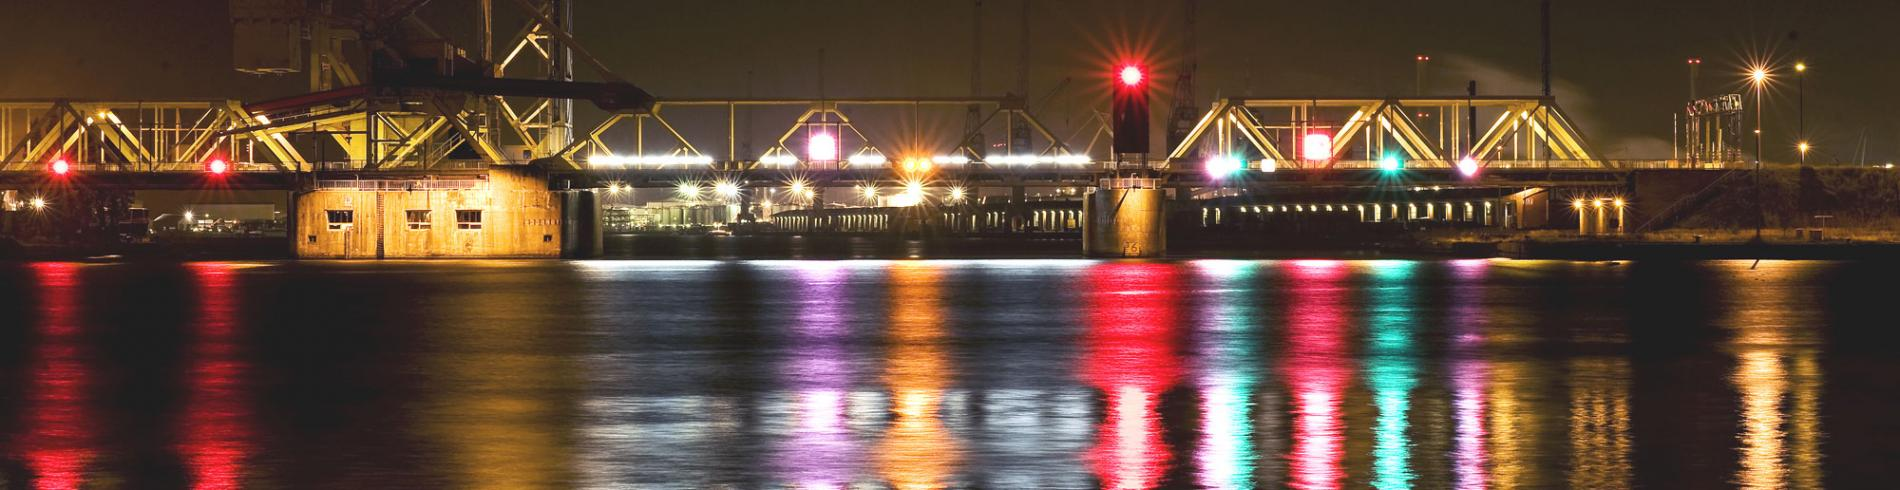 View of the docks at night with colourful reflections on the water